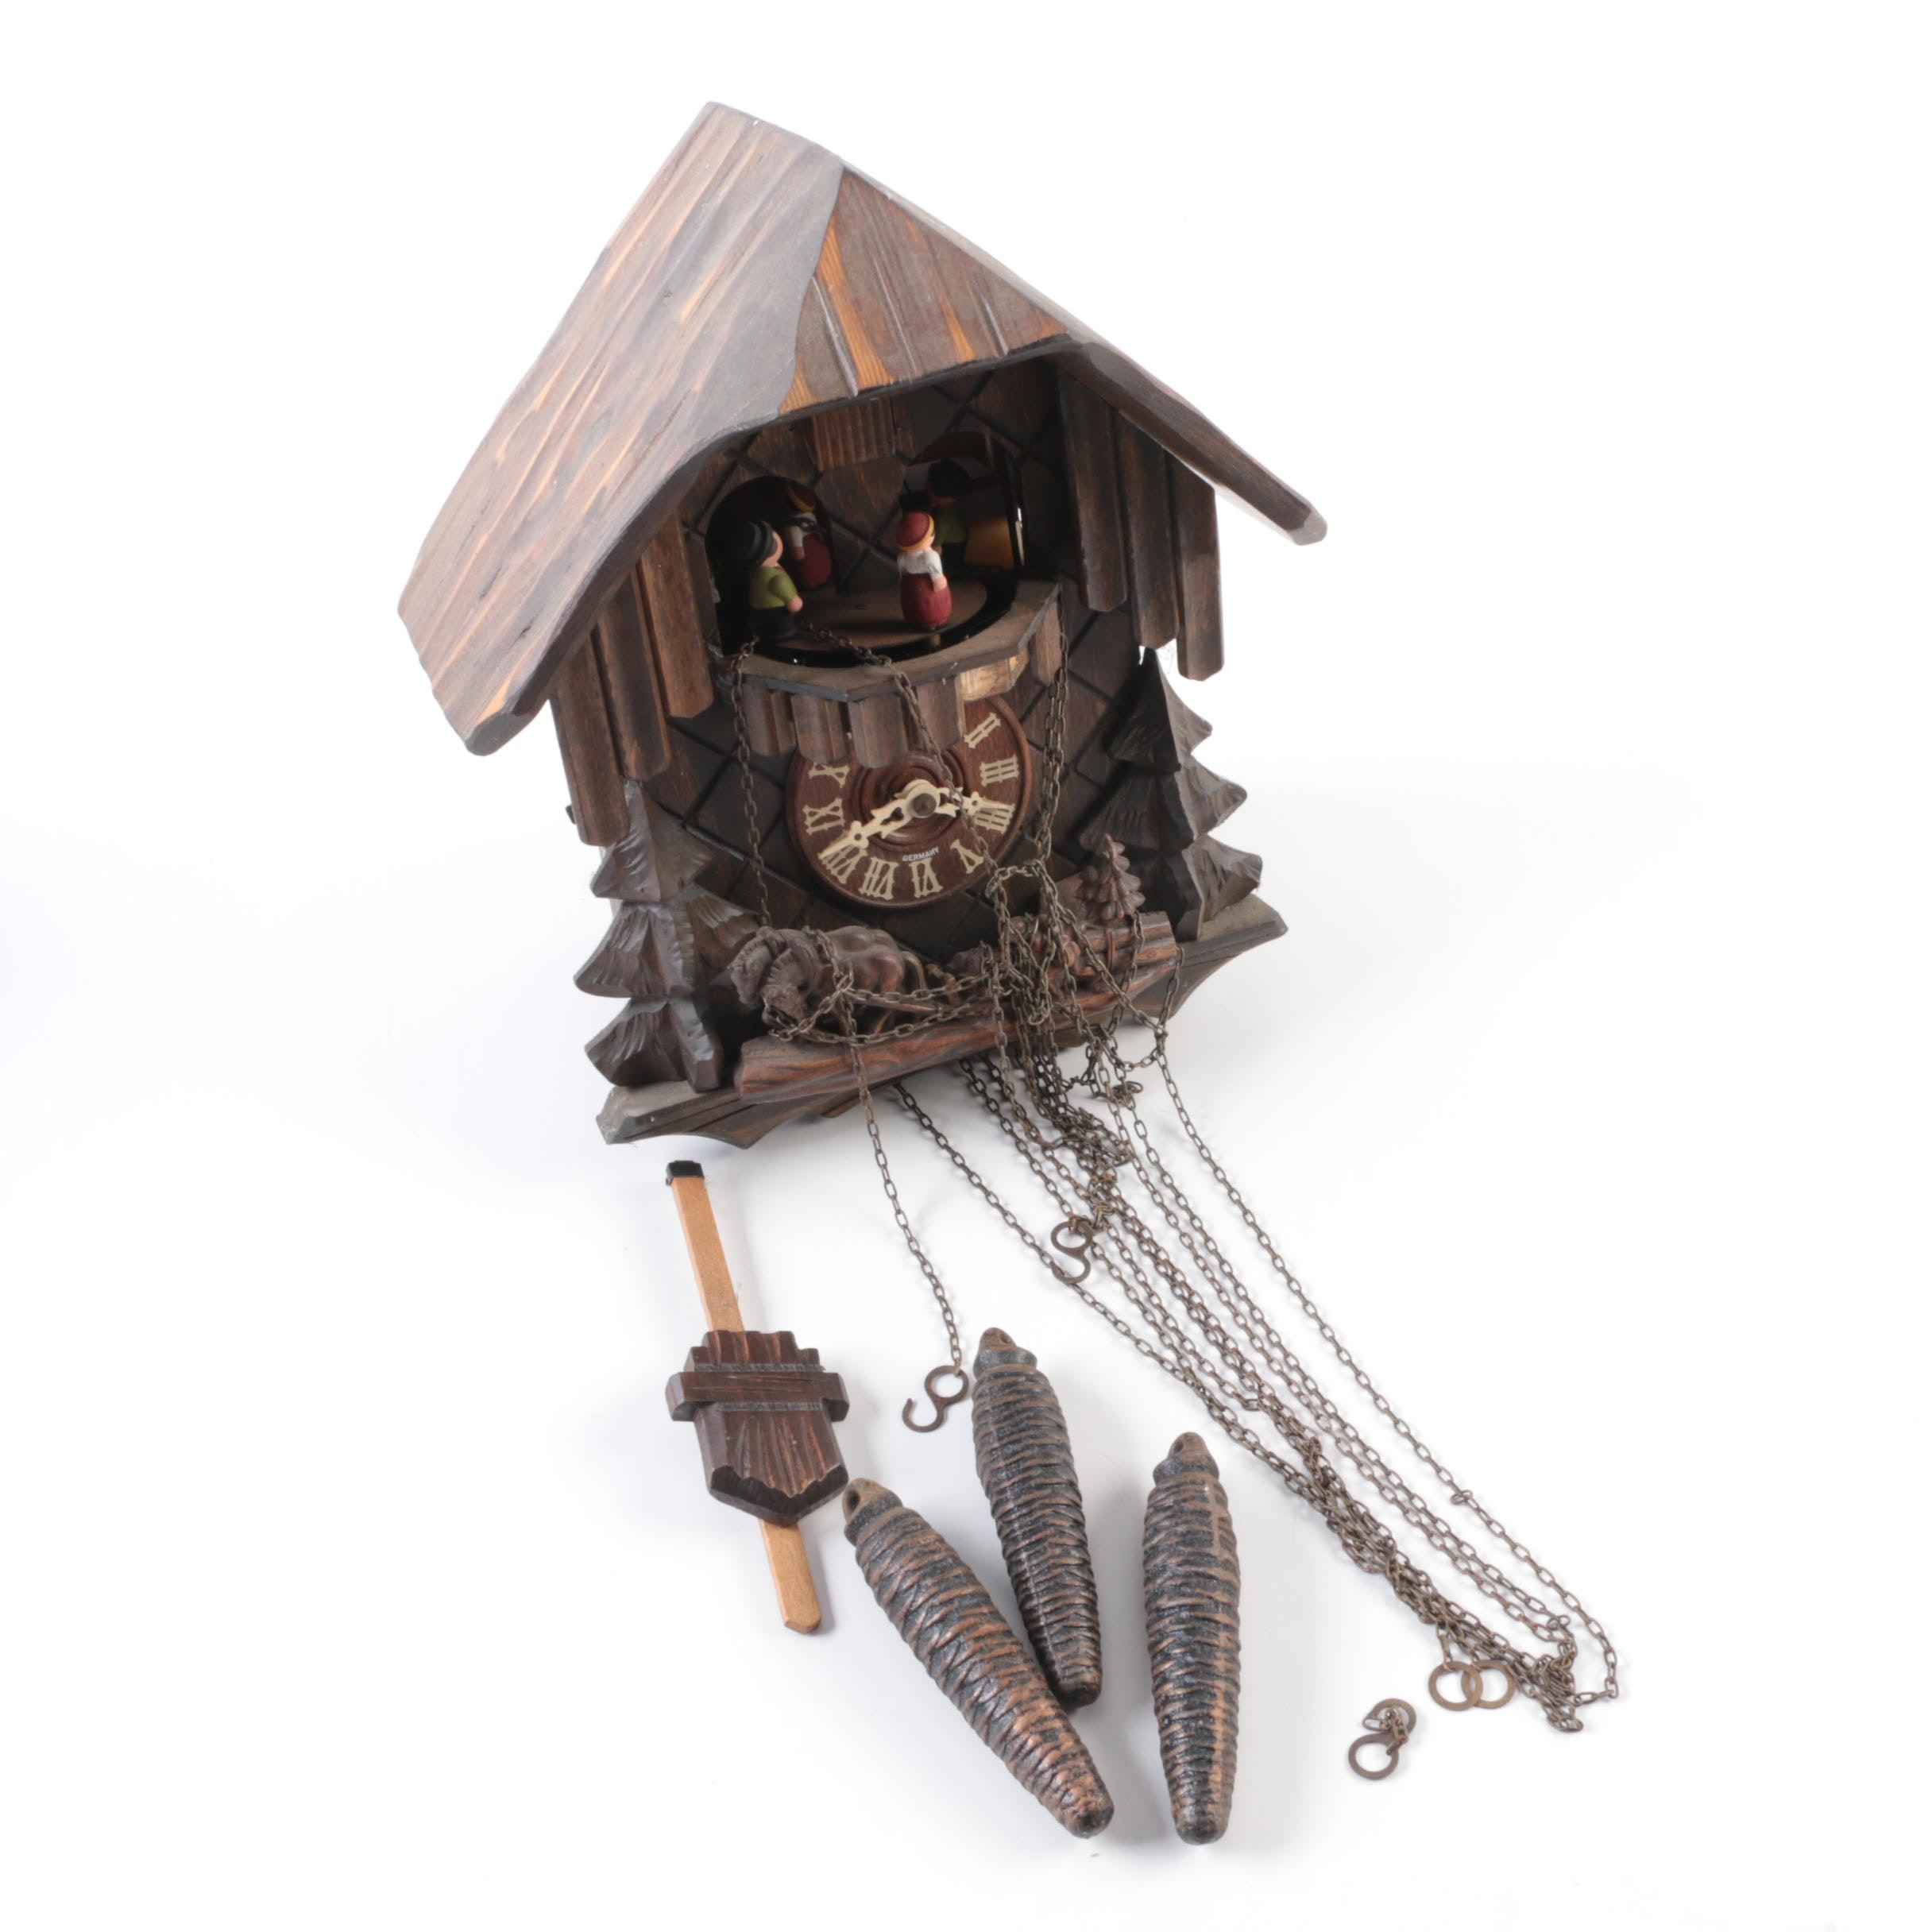 German Chalet Style Musical Cuckoo Clock